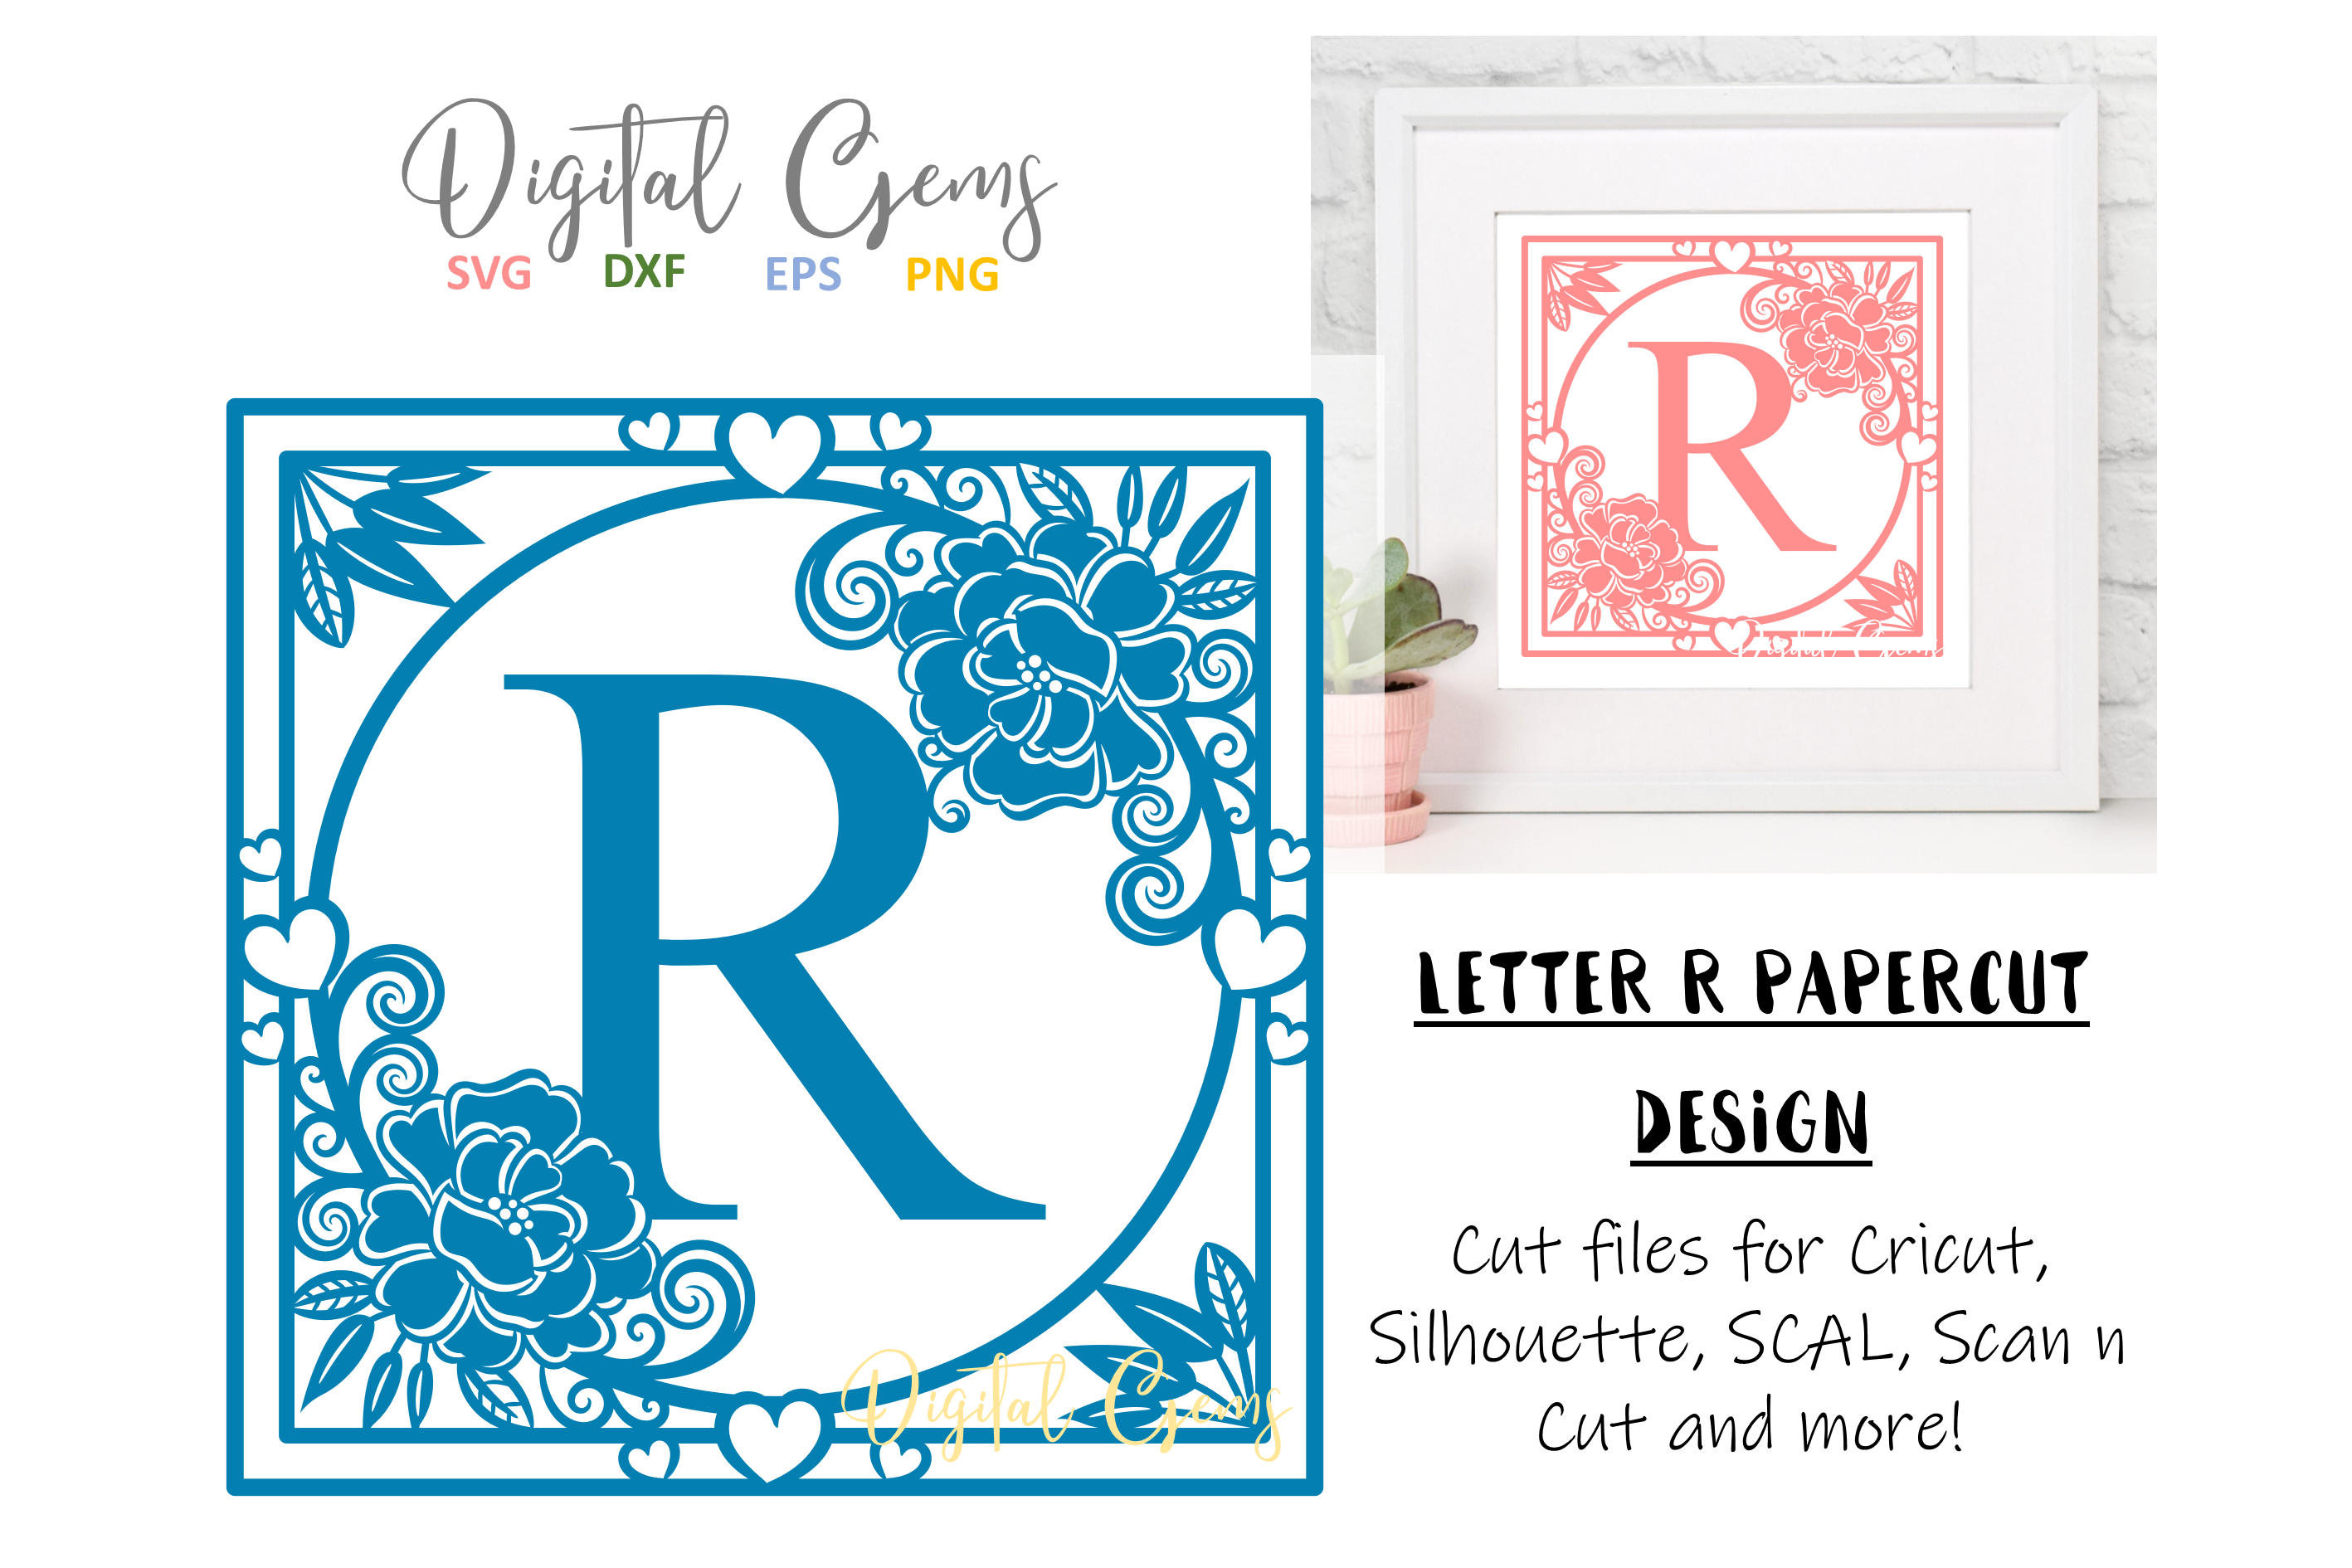 Letter R papercut design. SVG / DXF / EPS files example image 1